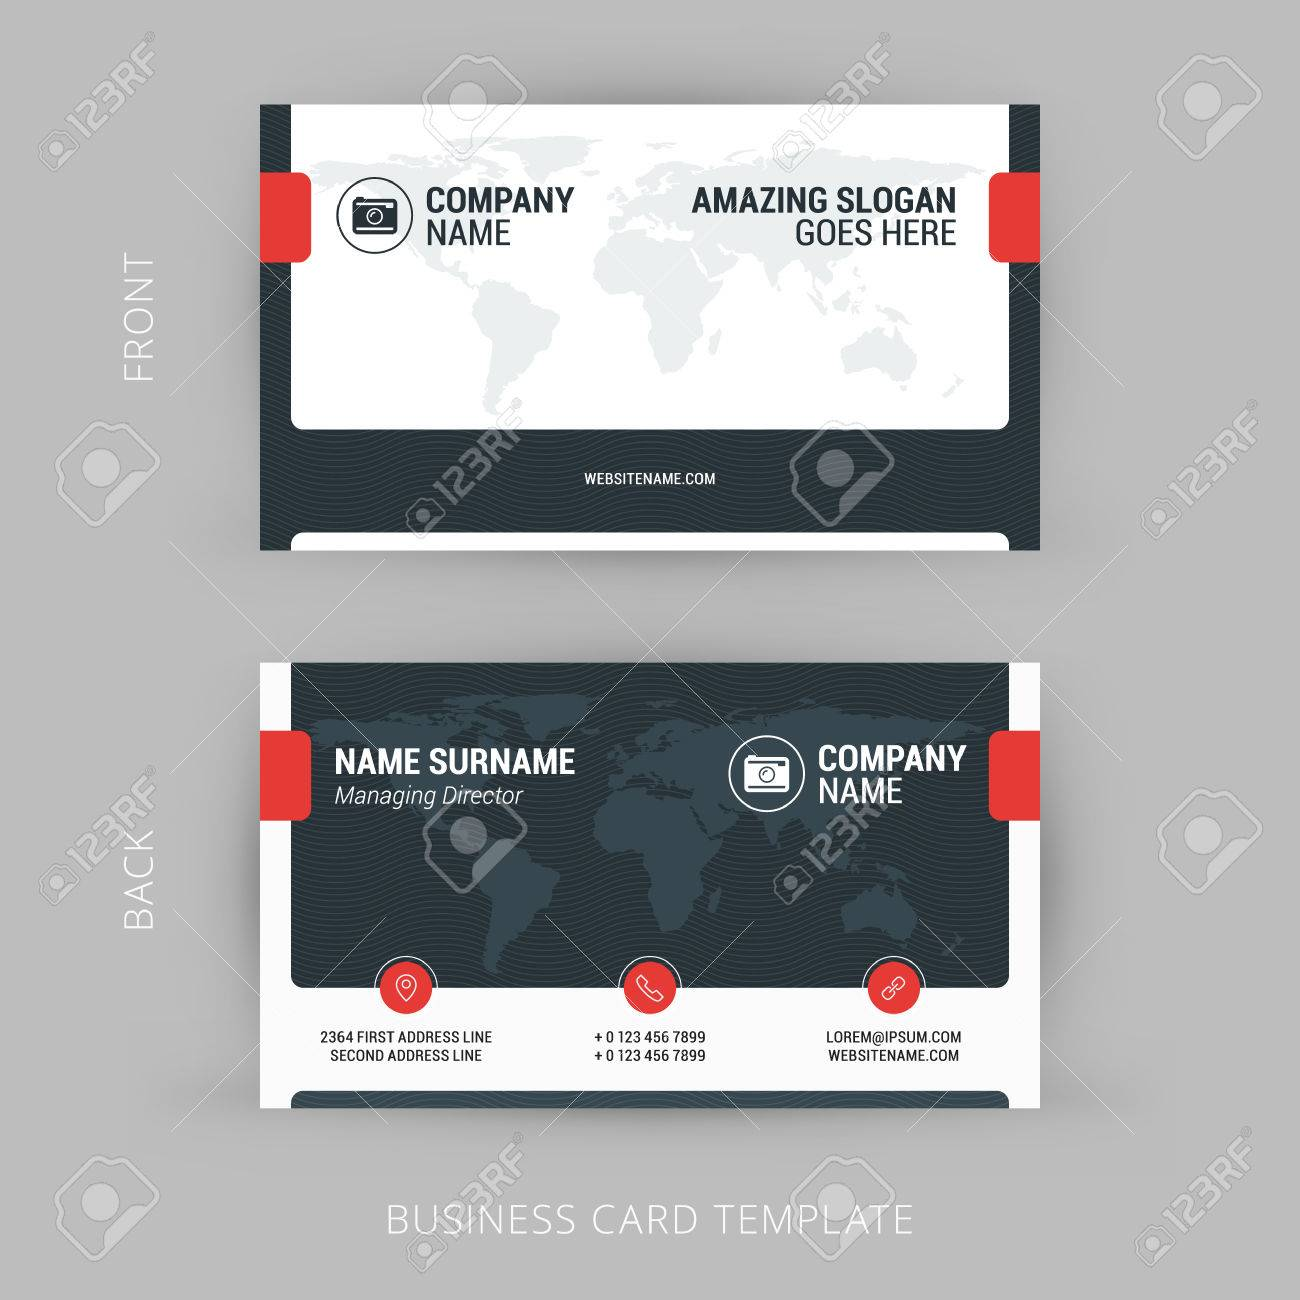 Creative And Clean Business Card Template. Corporate Business ...